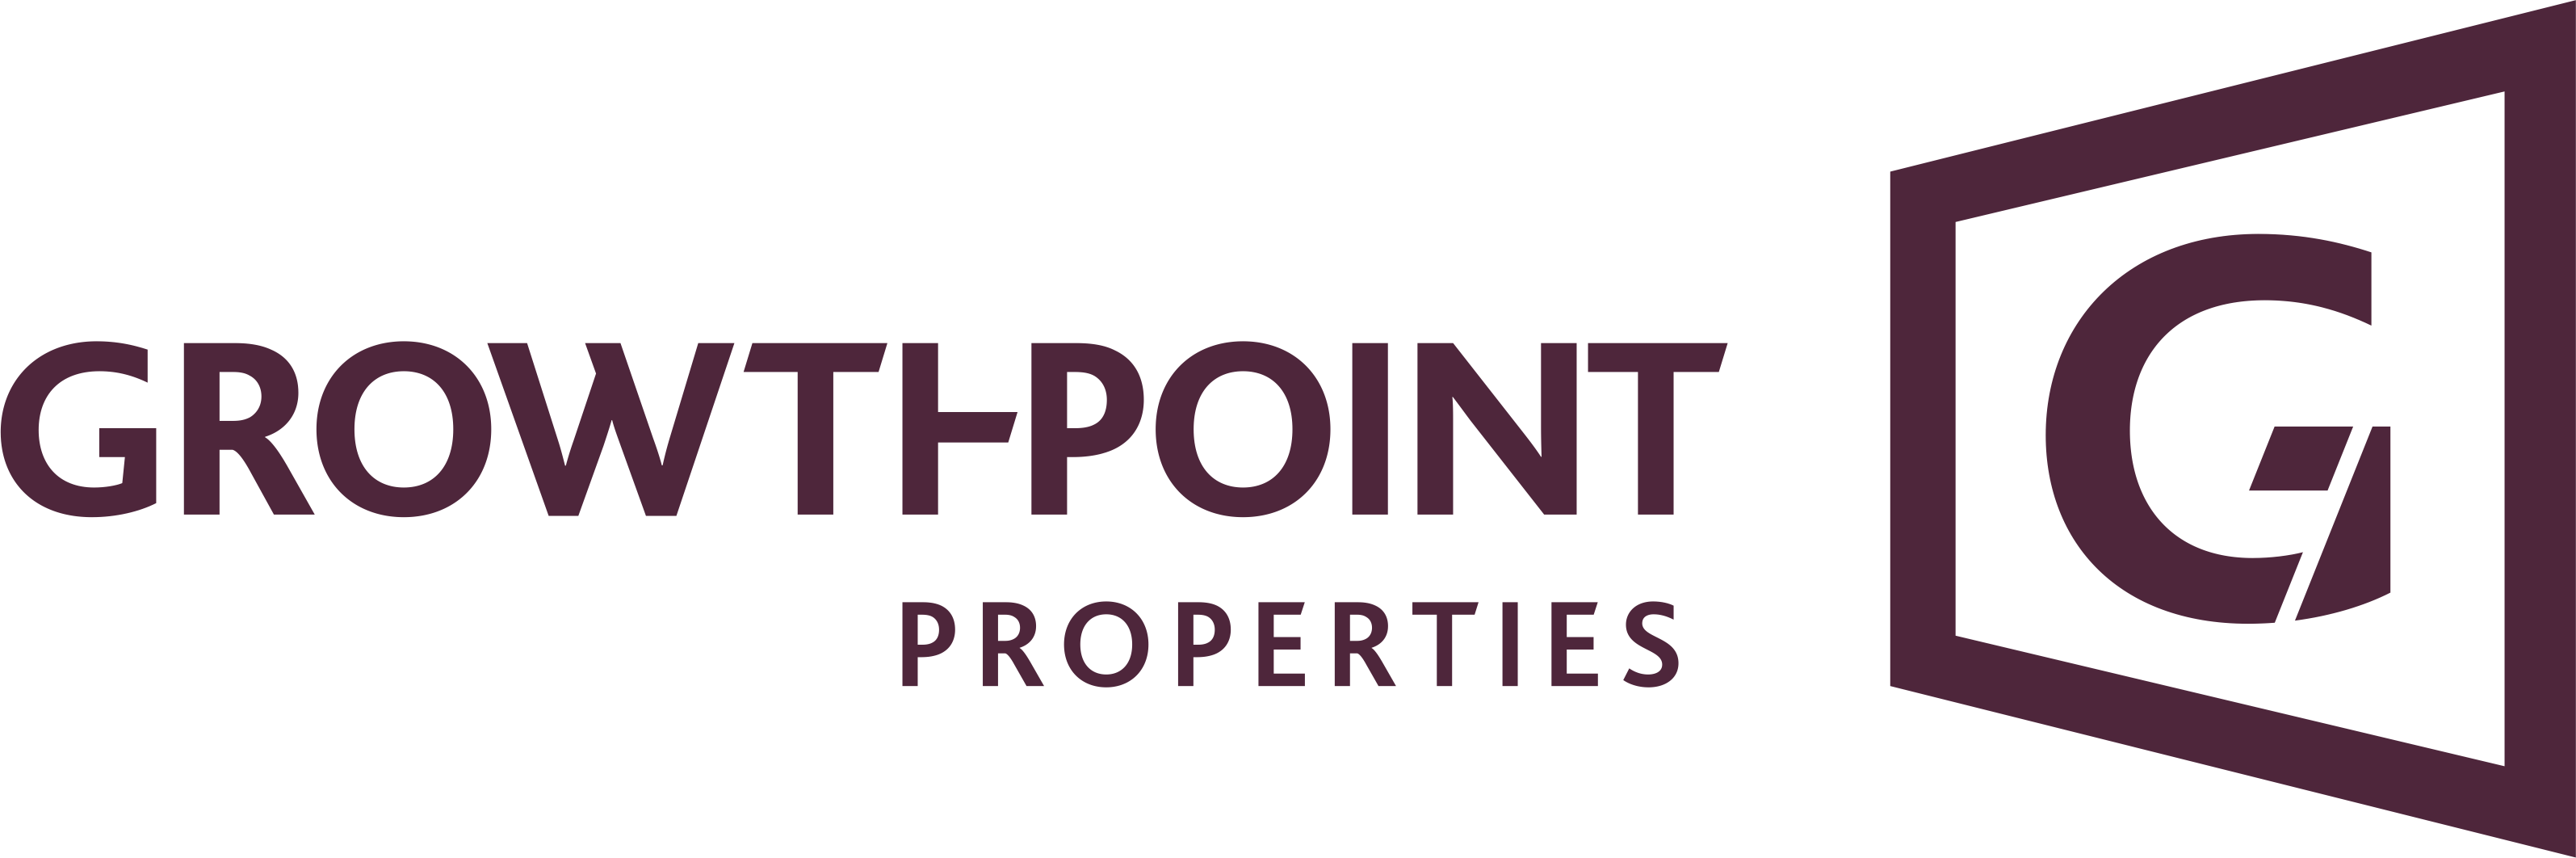 Growthpoint Properties : Brand Short Description Type Here.